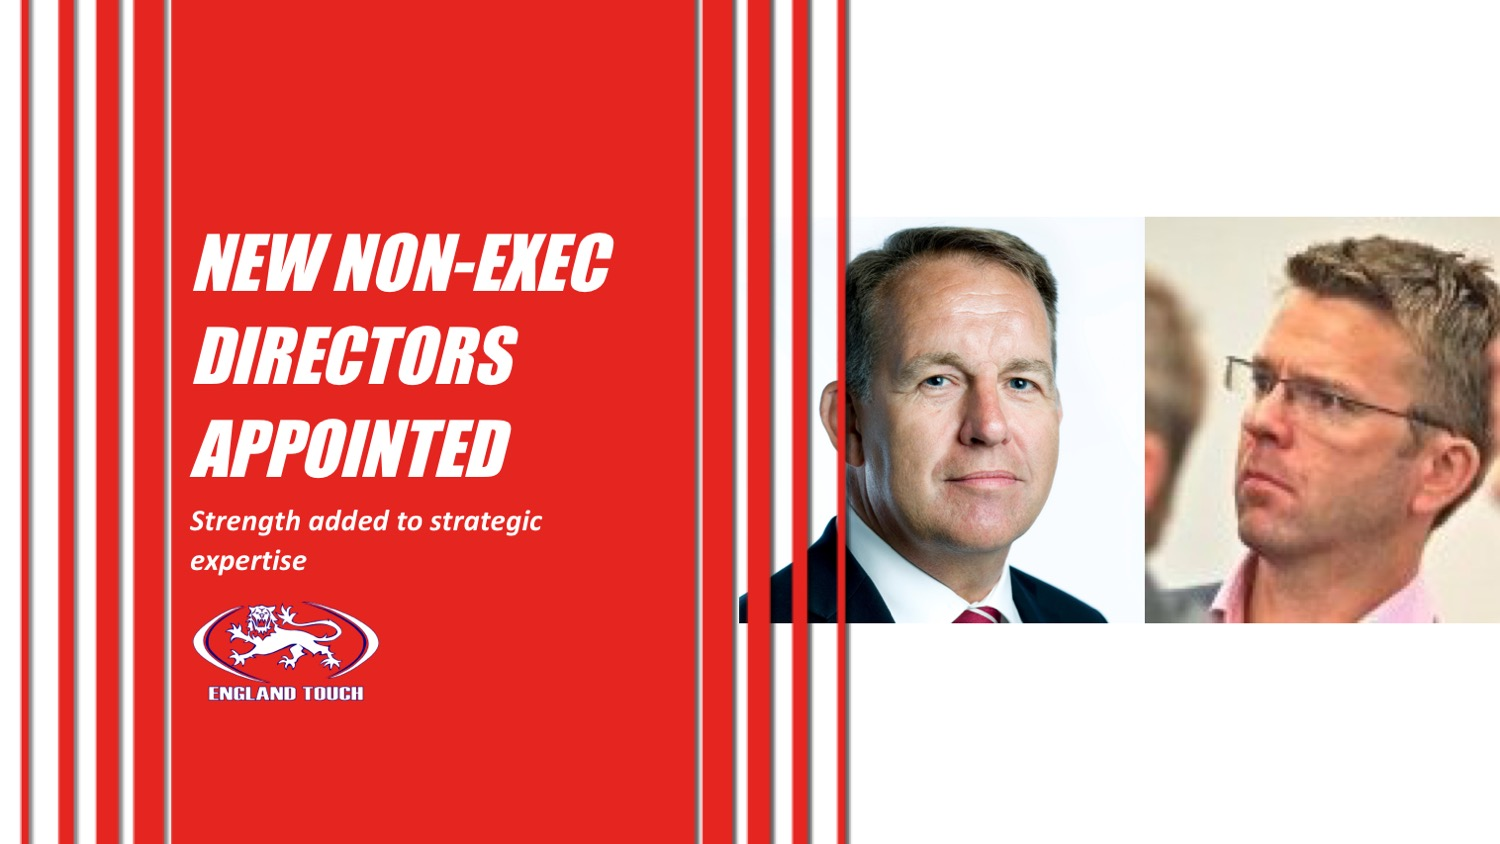 England Touch adds more experience to Board of Directors